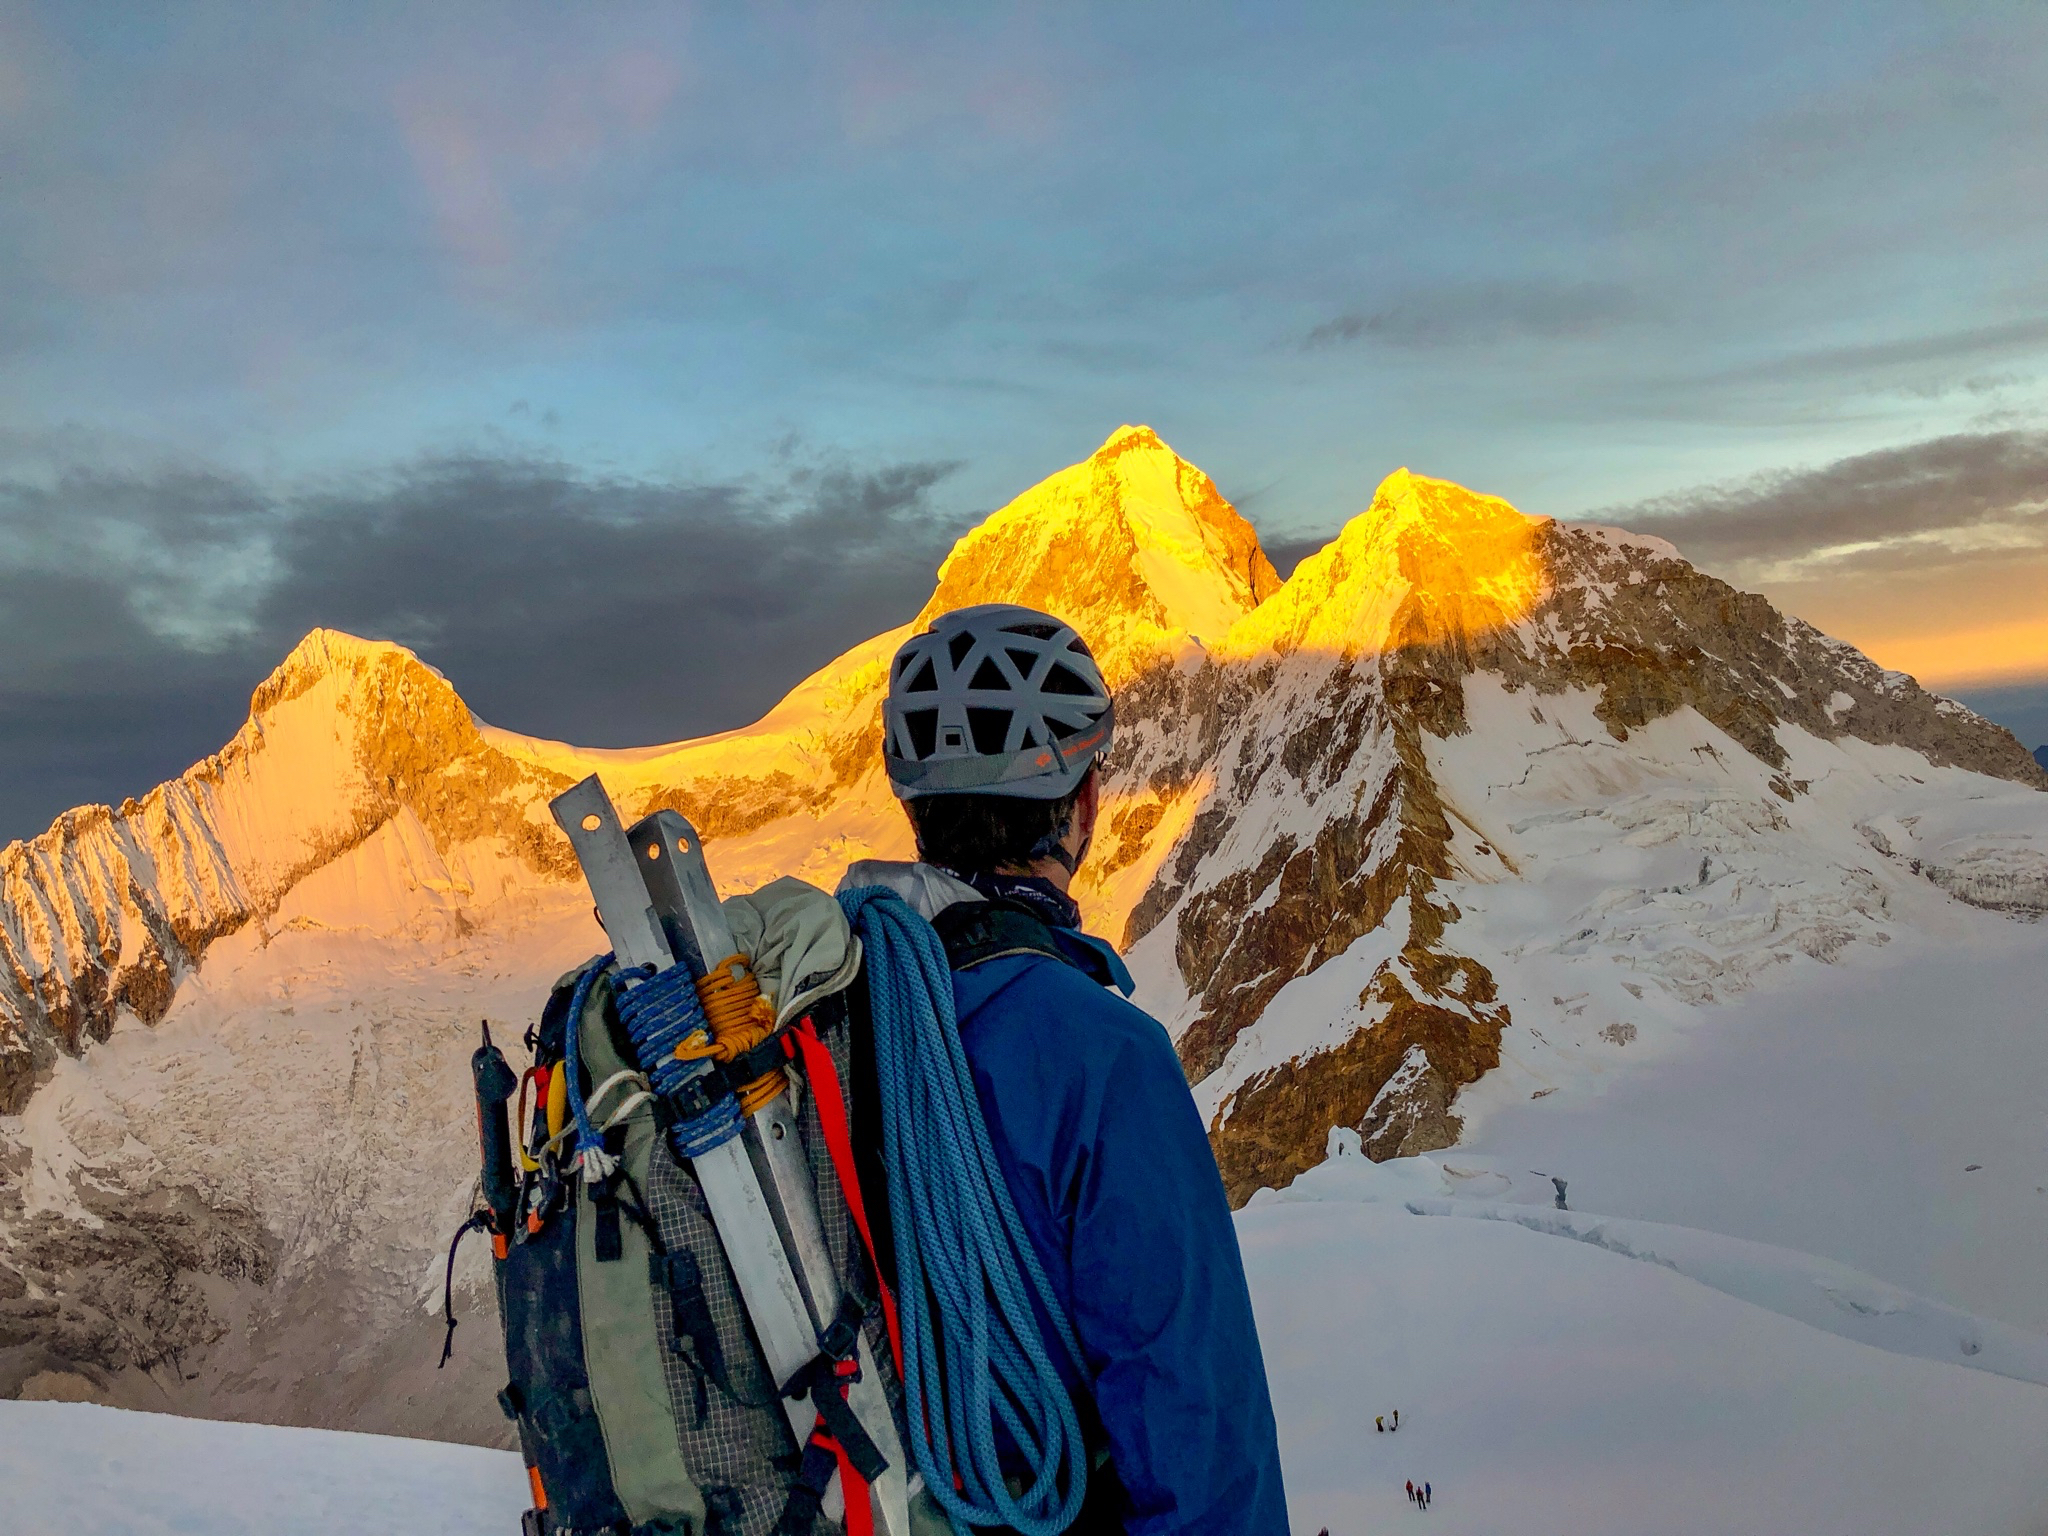 Man with climbing gear looking at sun rise on mountains